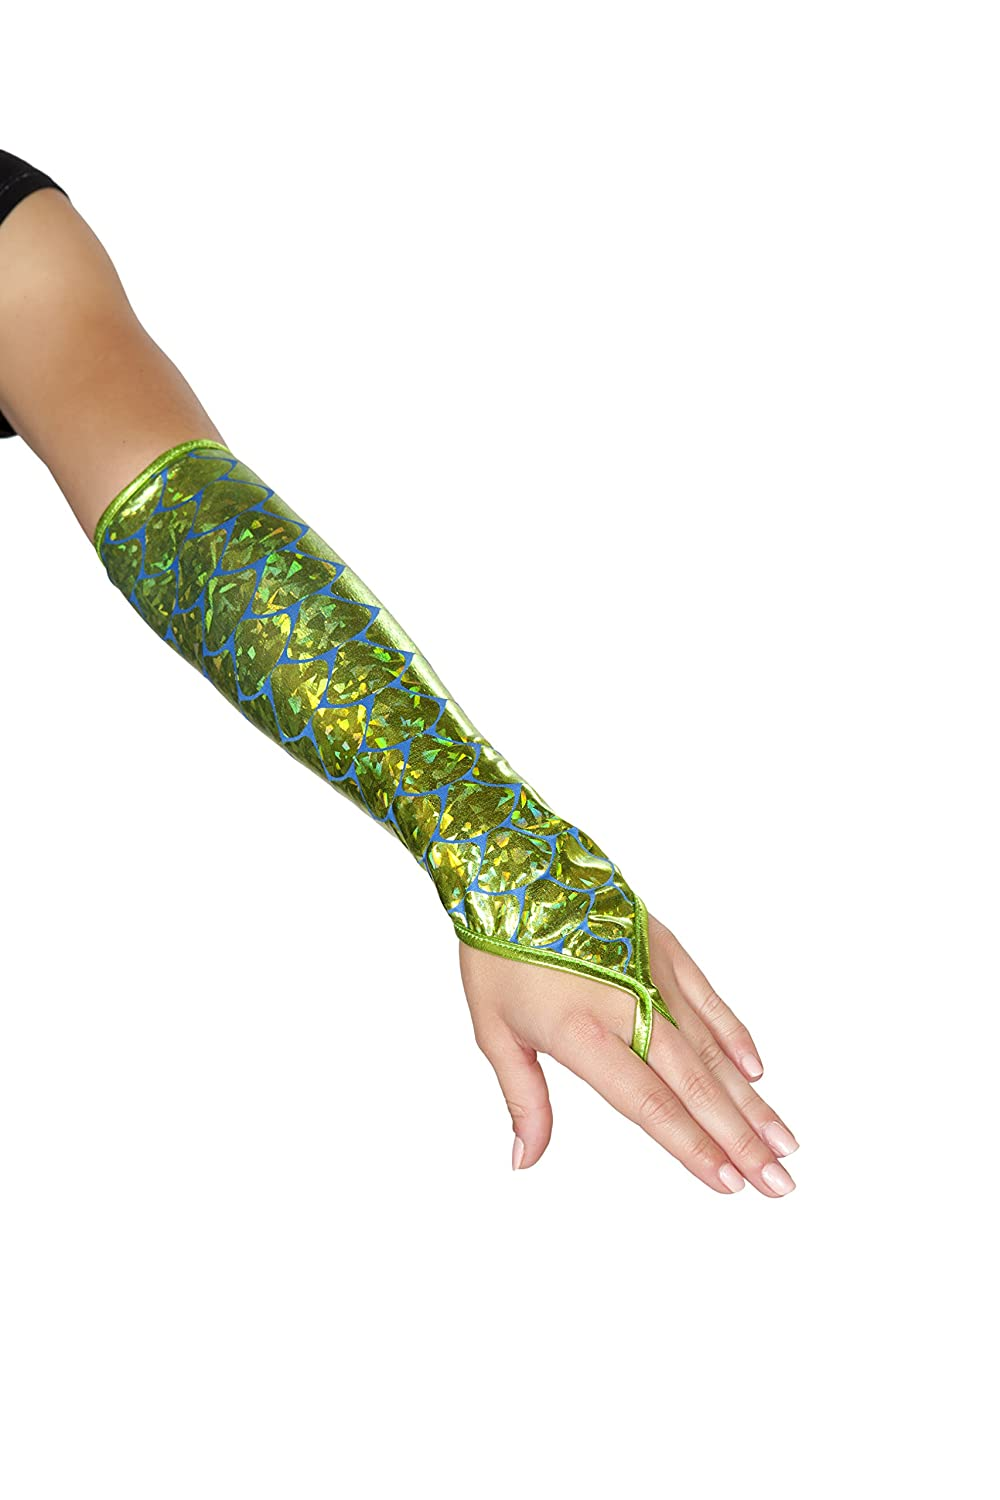 Matching Shimmery Multi-Color Mermaid Fingerless Elbow Length Gloves - DeluxeAdultCostumes.com